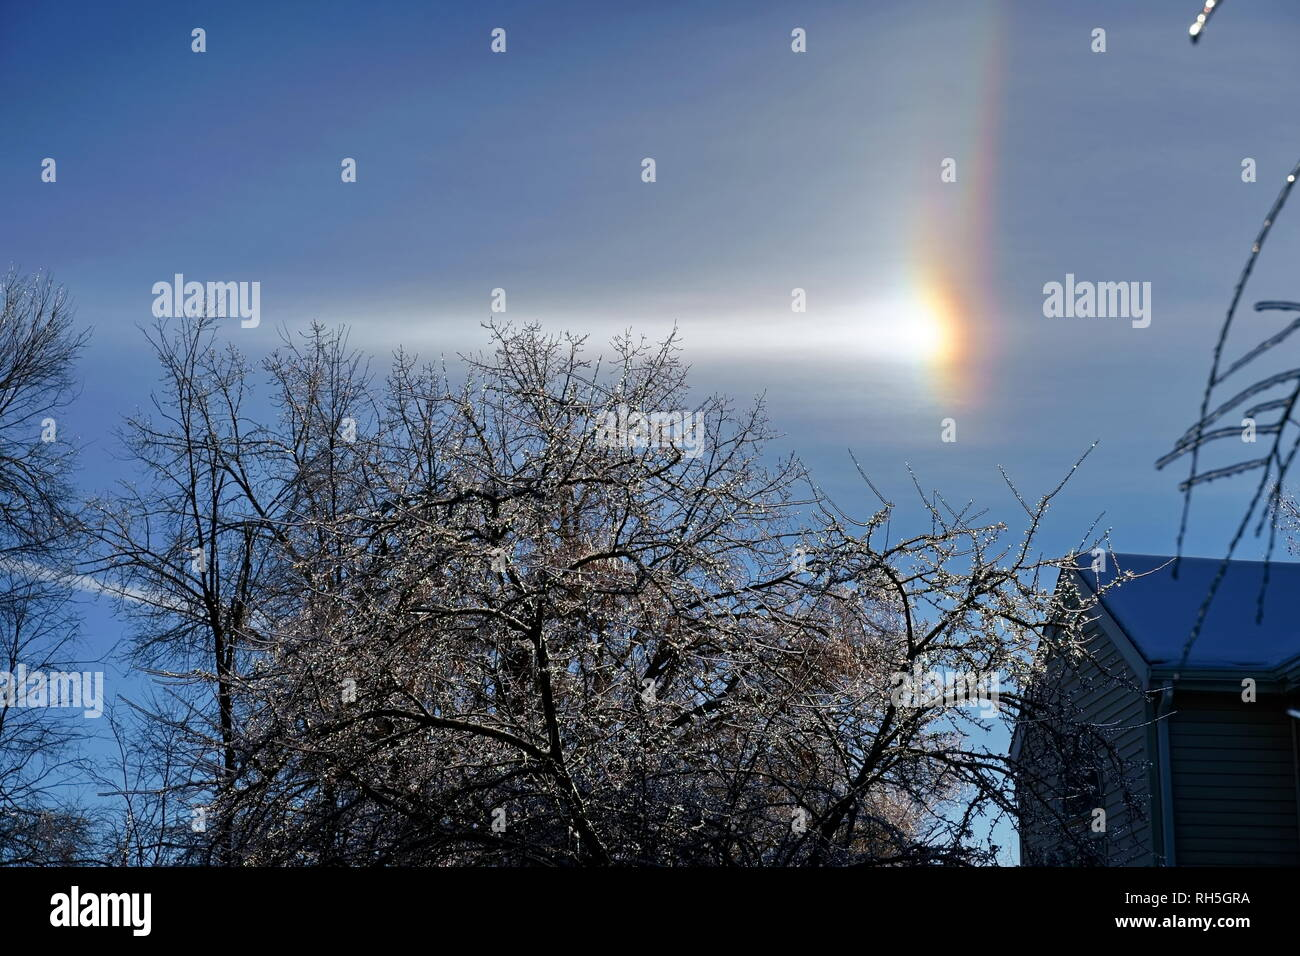 An unusual rainbow phenomena during a New England winter. - Stock Image